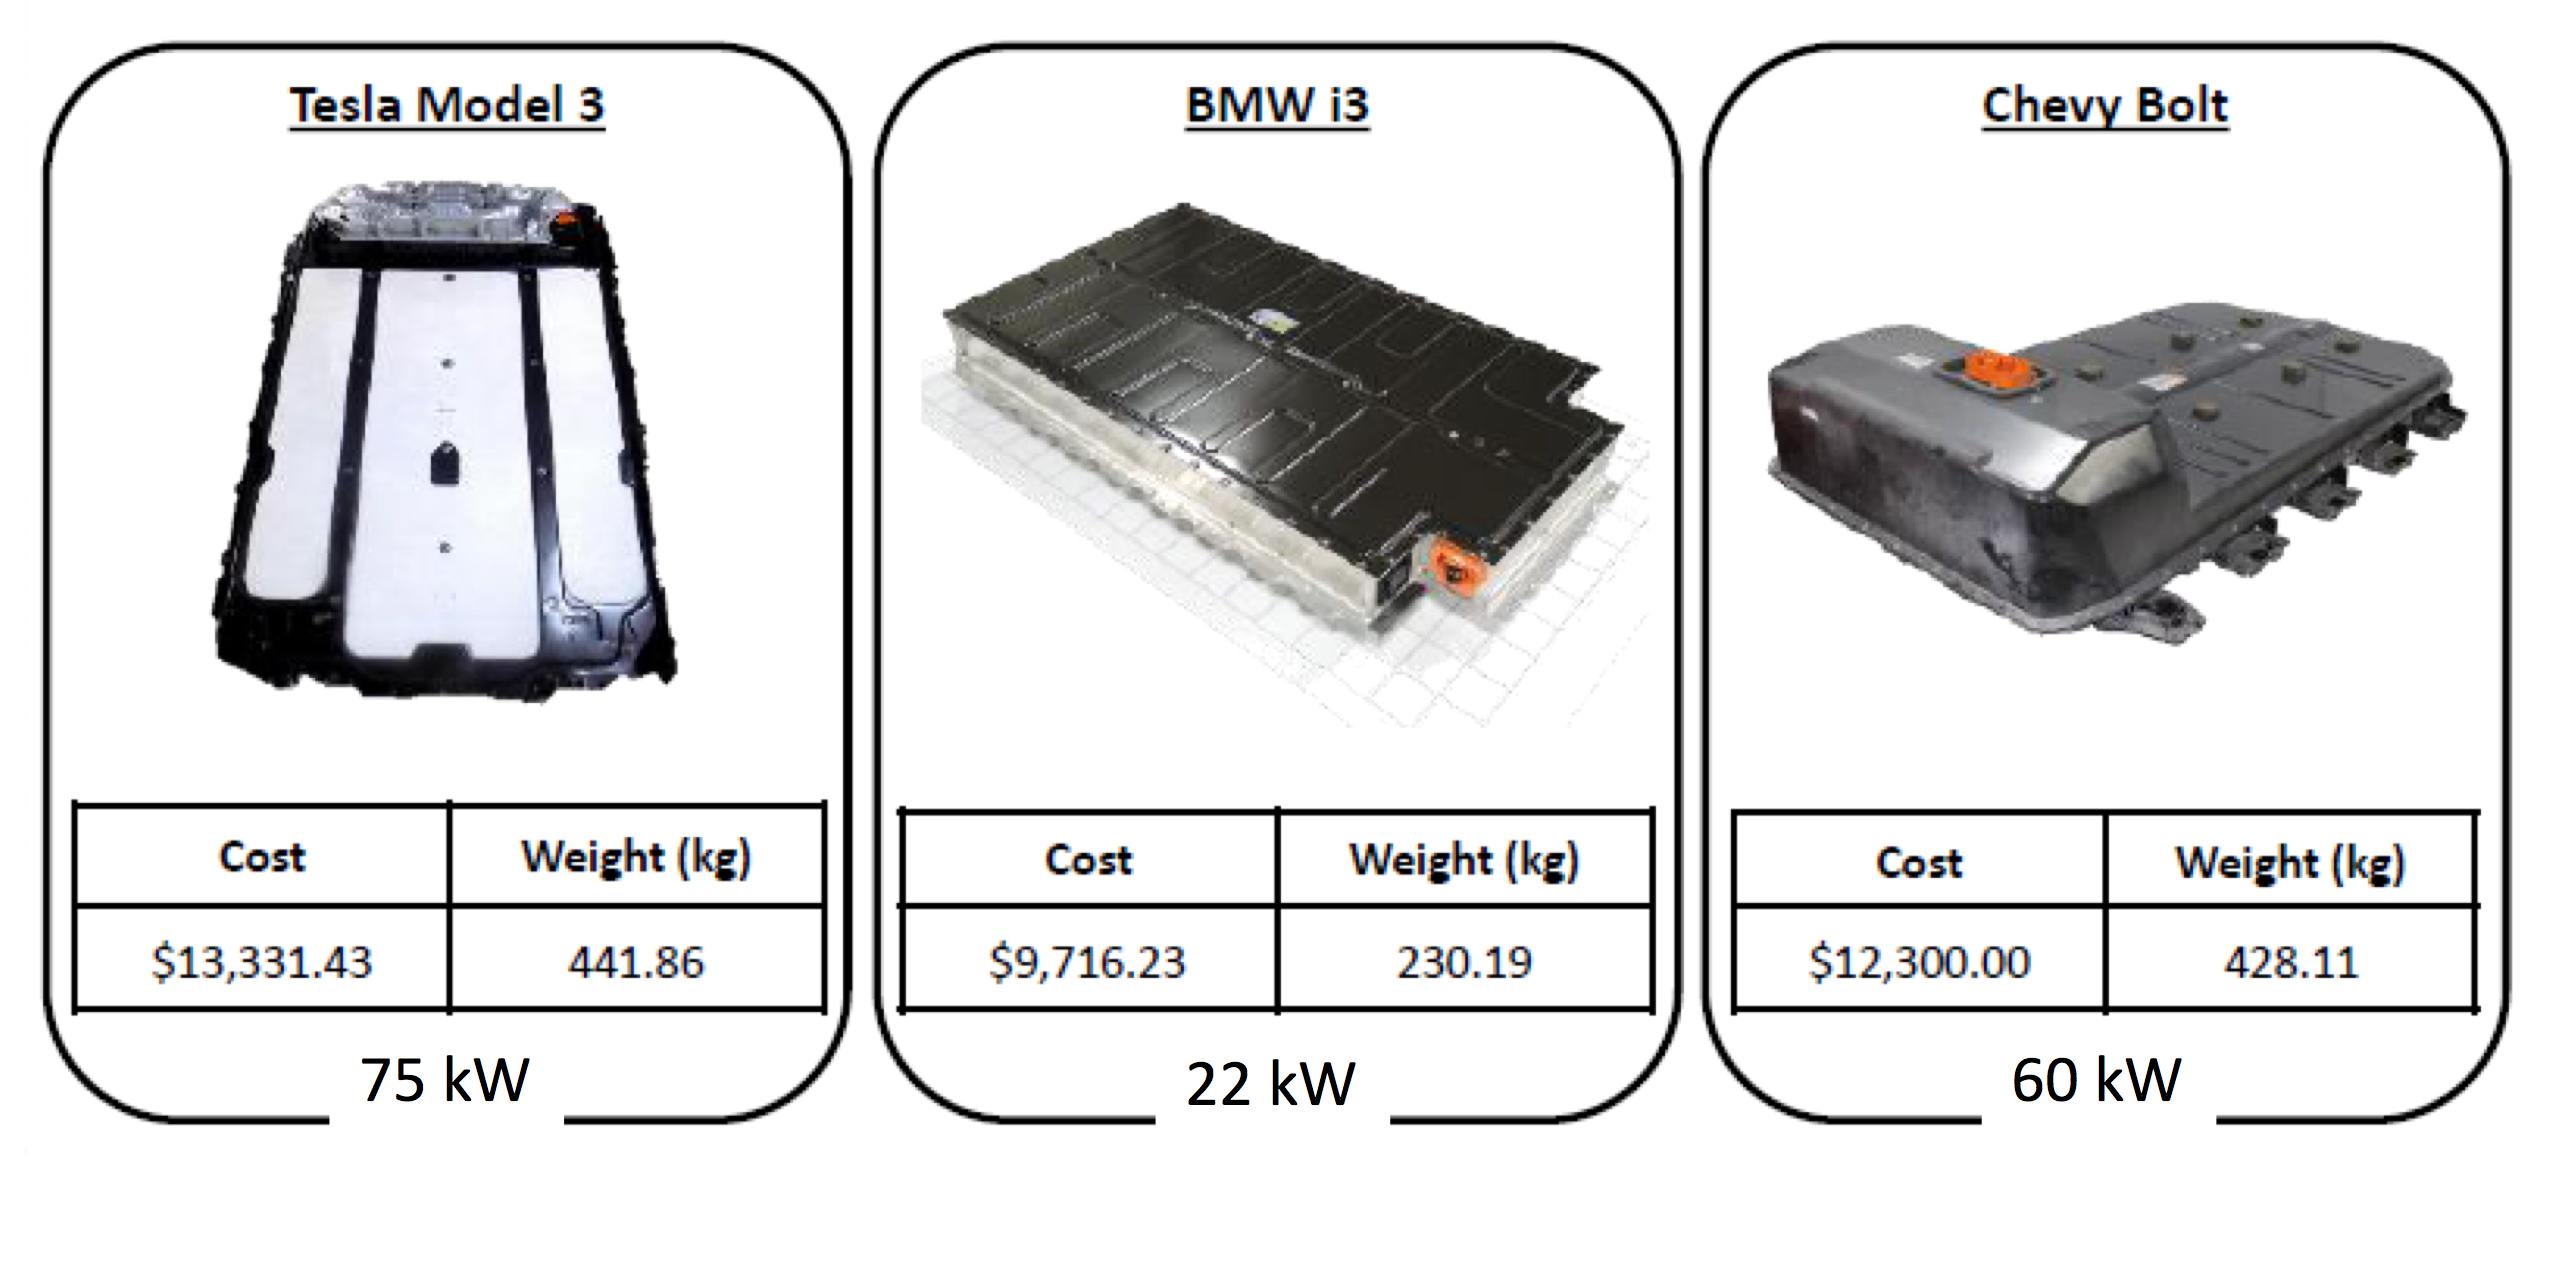 Figure 2. Side-by-side comparison of the battery pack for the Tesla Model 3, BMW i3, and Chevy Bolt.